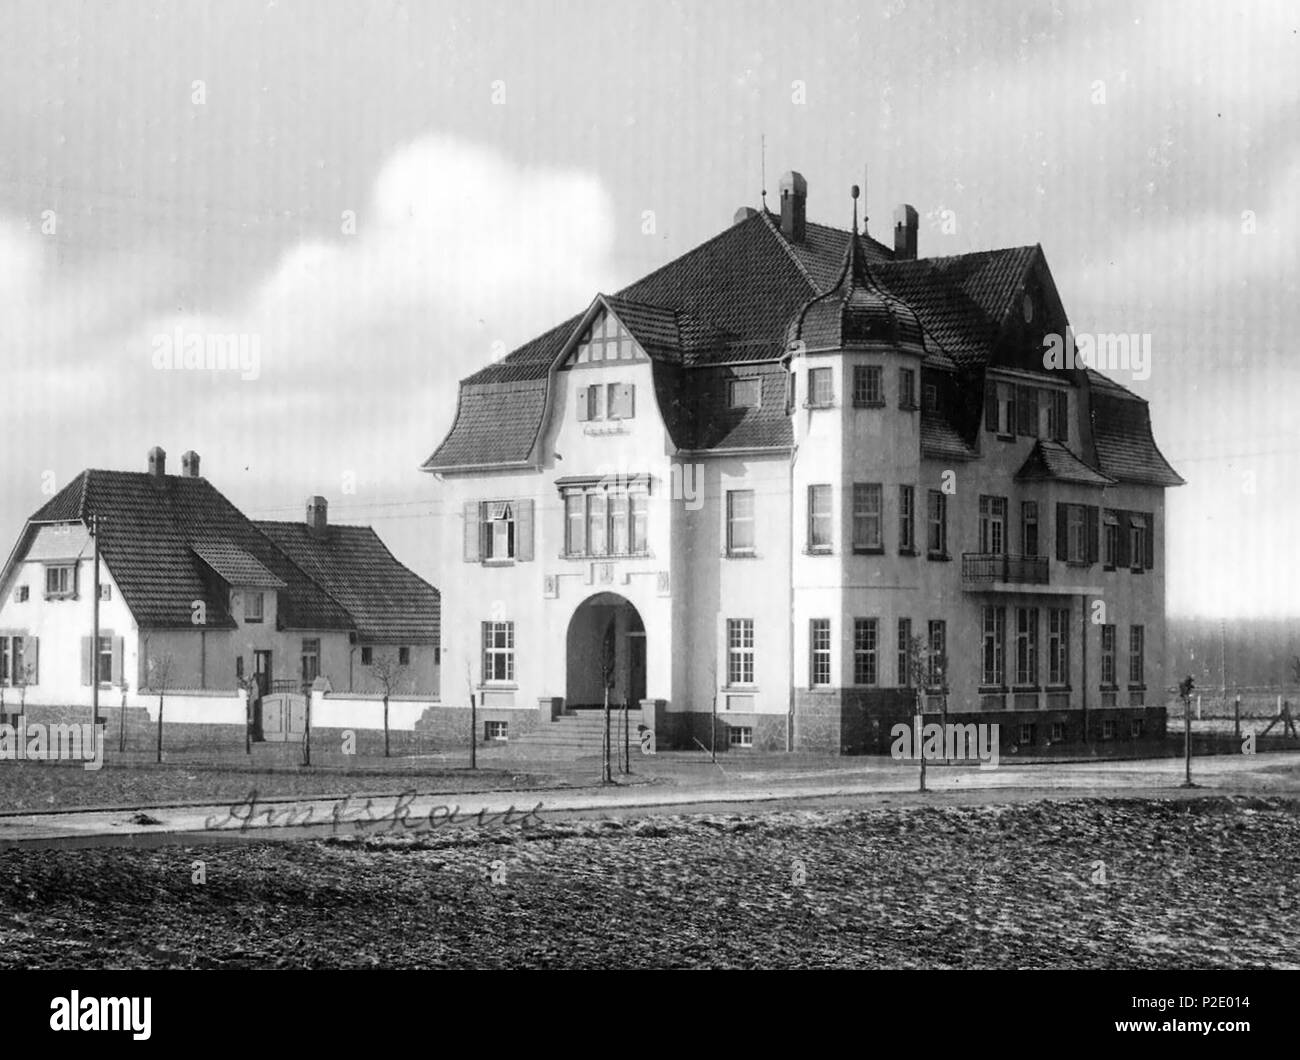 . English: Amtshaus des Amtes Halle (Westf.) Deutsch: Office of the Amt administrative division Halle (Westf.) . circa 1910. Unknown 23 Halle (Westfalen) - Amtshaus des Amtes Halle (Westf.) - Stock Image